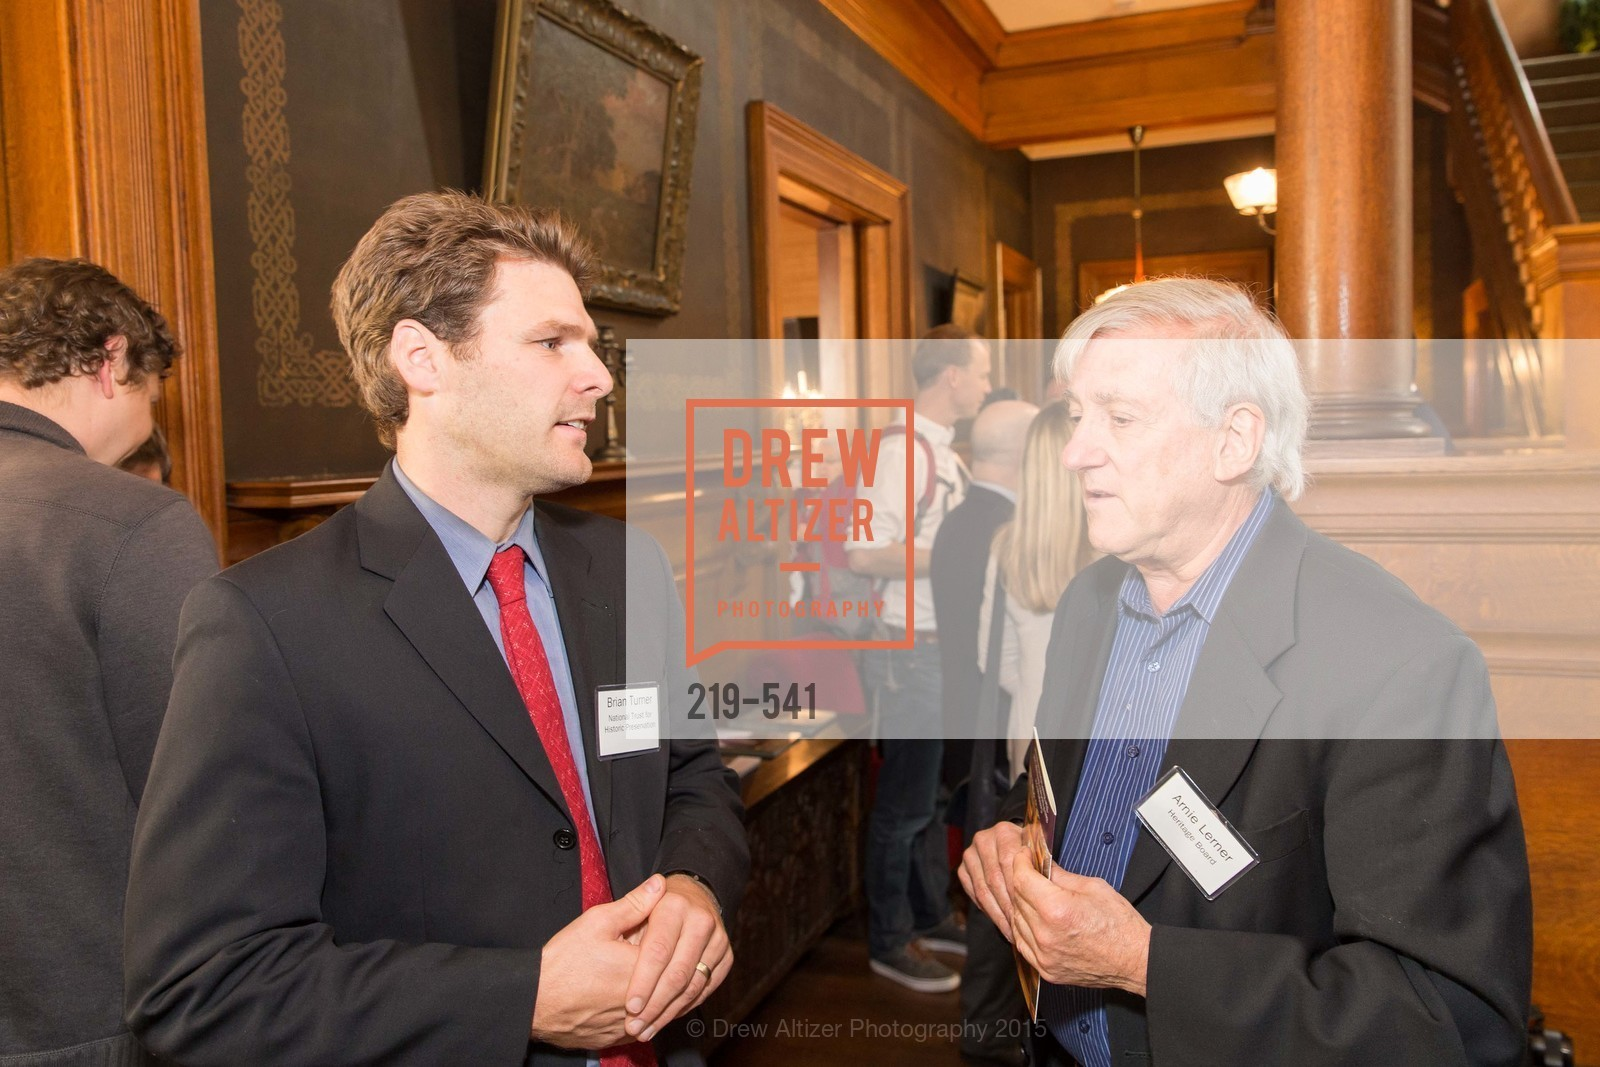 Brian Turner, Arnie Lerner, Ceremony Inaugurating the Campaign for San Francisco Heritage & Haas-Lilienthal House, Haas-Lilienthal House. 2007 Franklin Street, November 18th, 2015,Drew Altizer, Drew Altizer Photography, full-service agency, private events, San Francisco photographer, photographer california